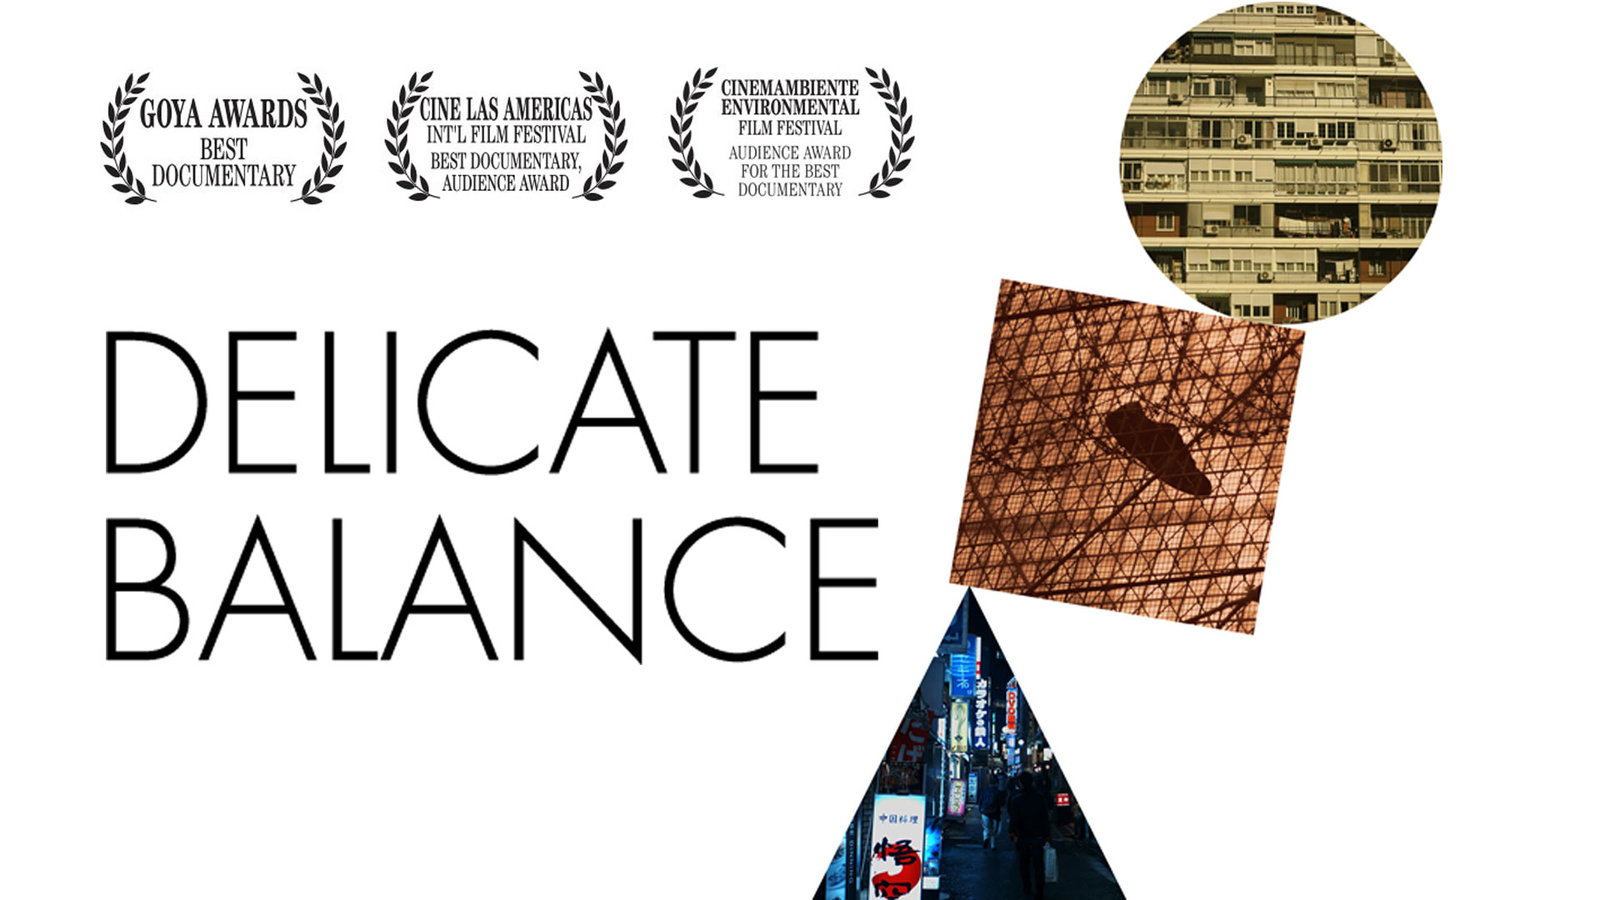 Delicate Balance - Three Stories Exploring Globalization